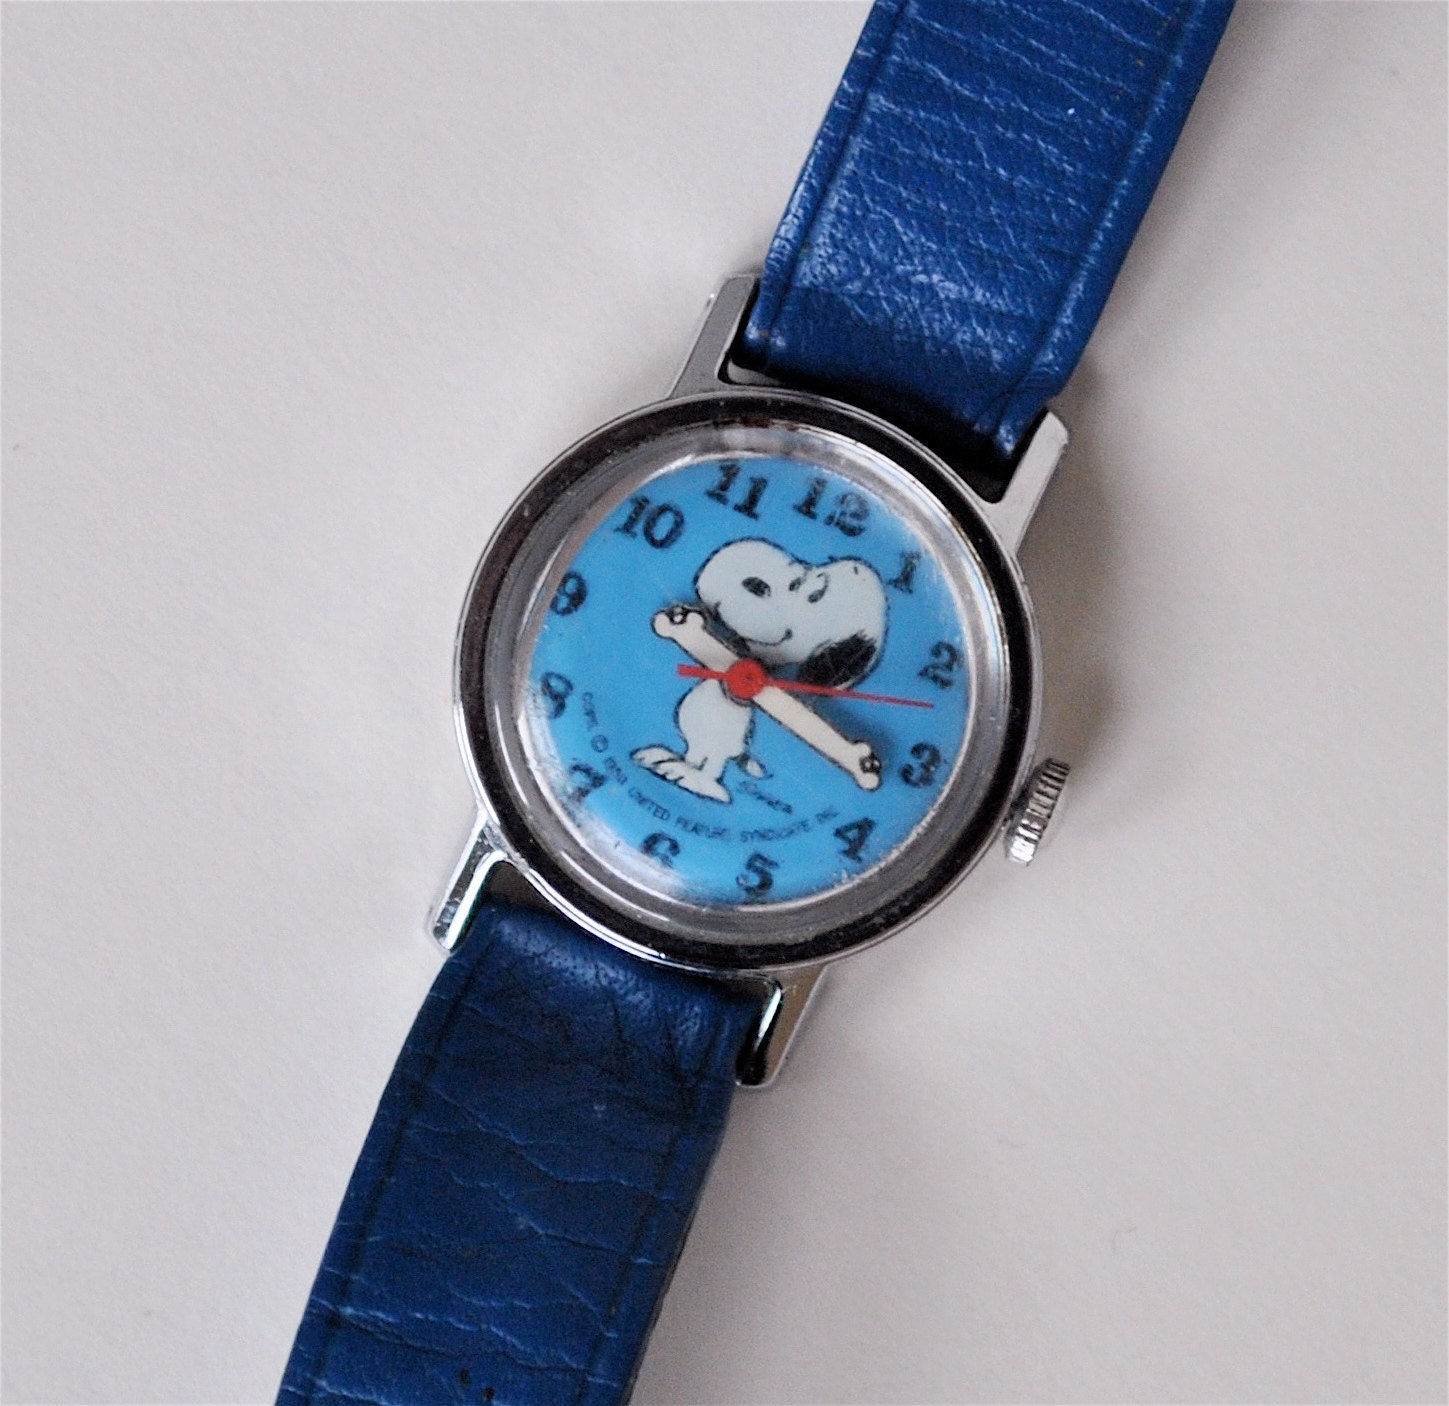 Snoopy Watch Vintage Blue Peanuts Charles By Daisychainvintage